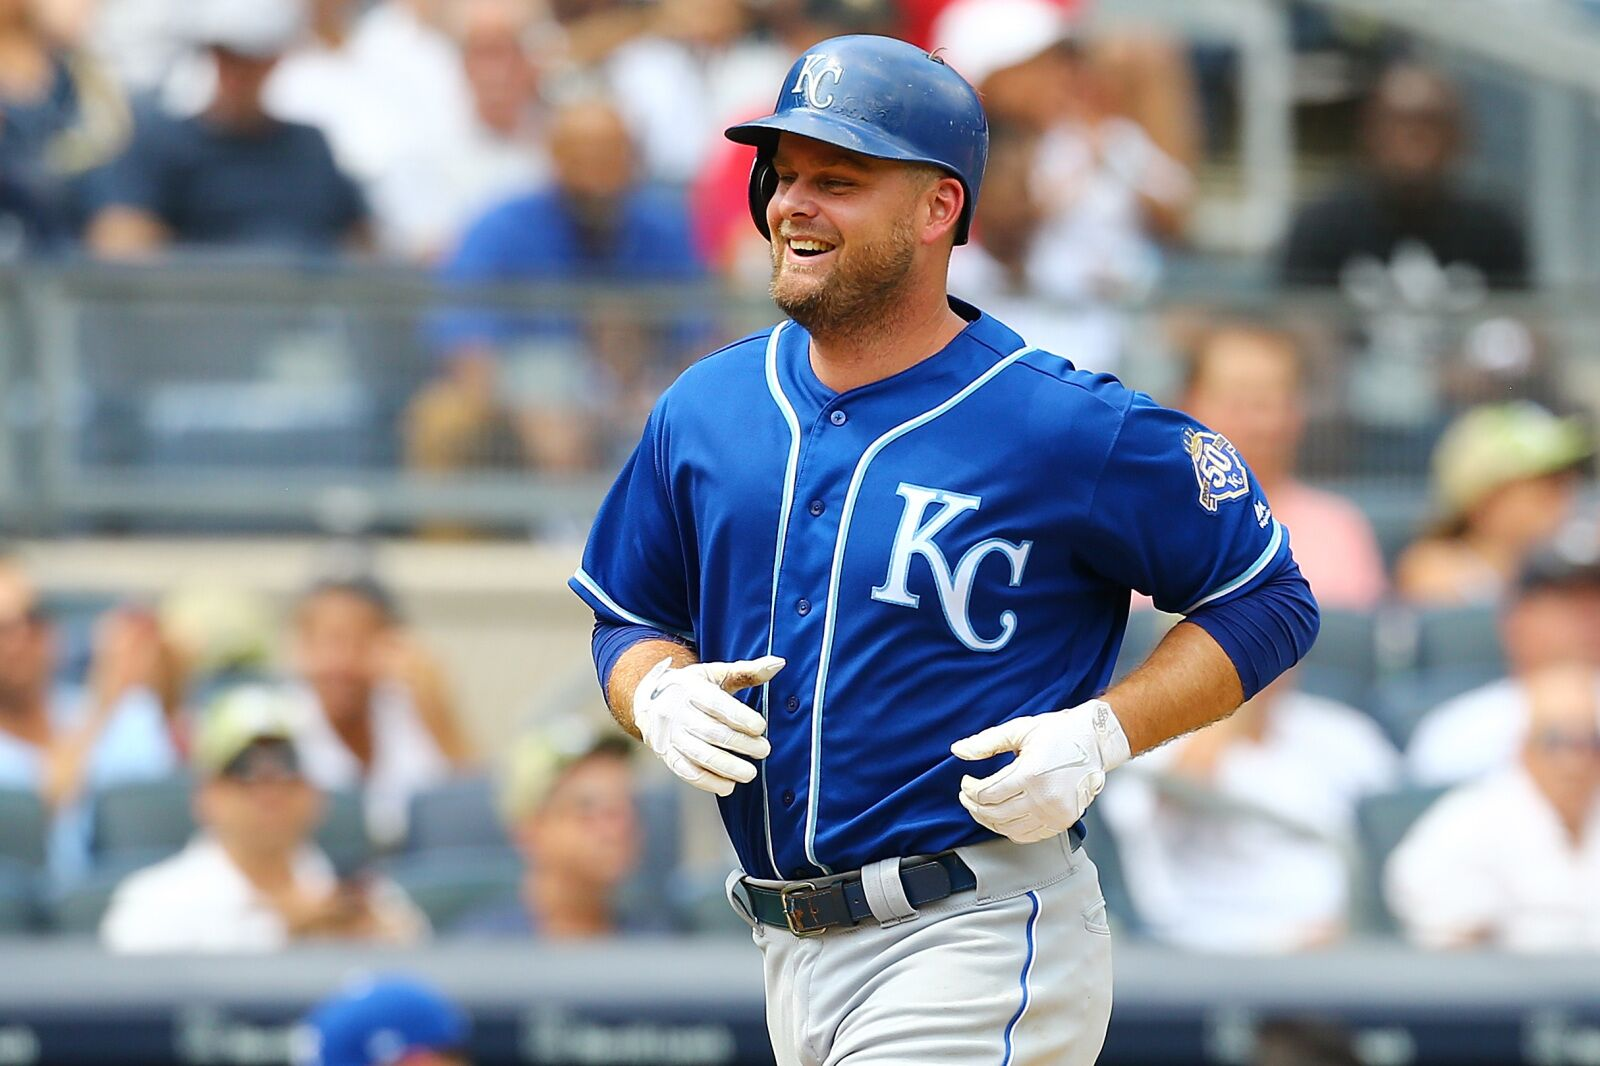 f3ced9f34f2a59 Yankees Rumors: Free agent first basemen they could still sign